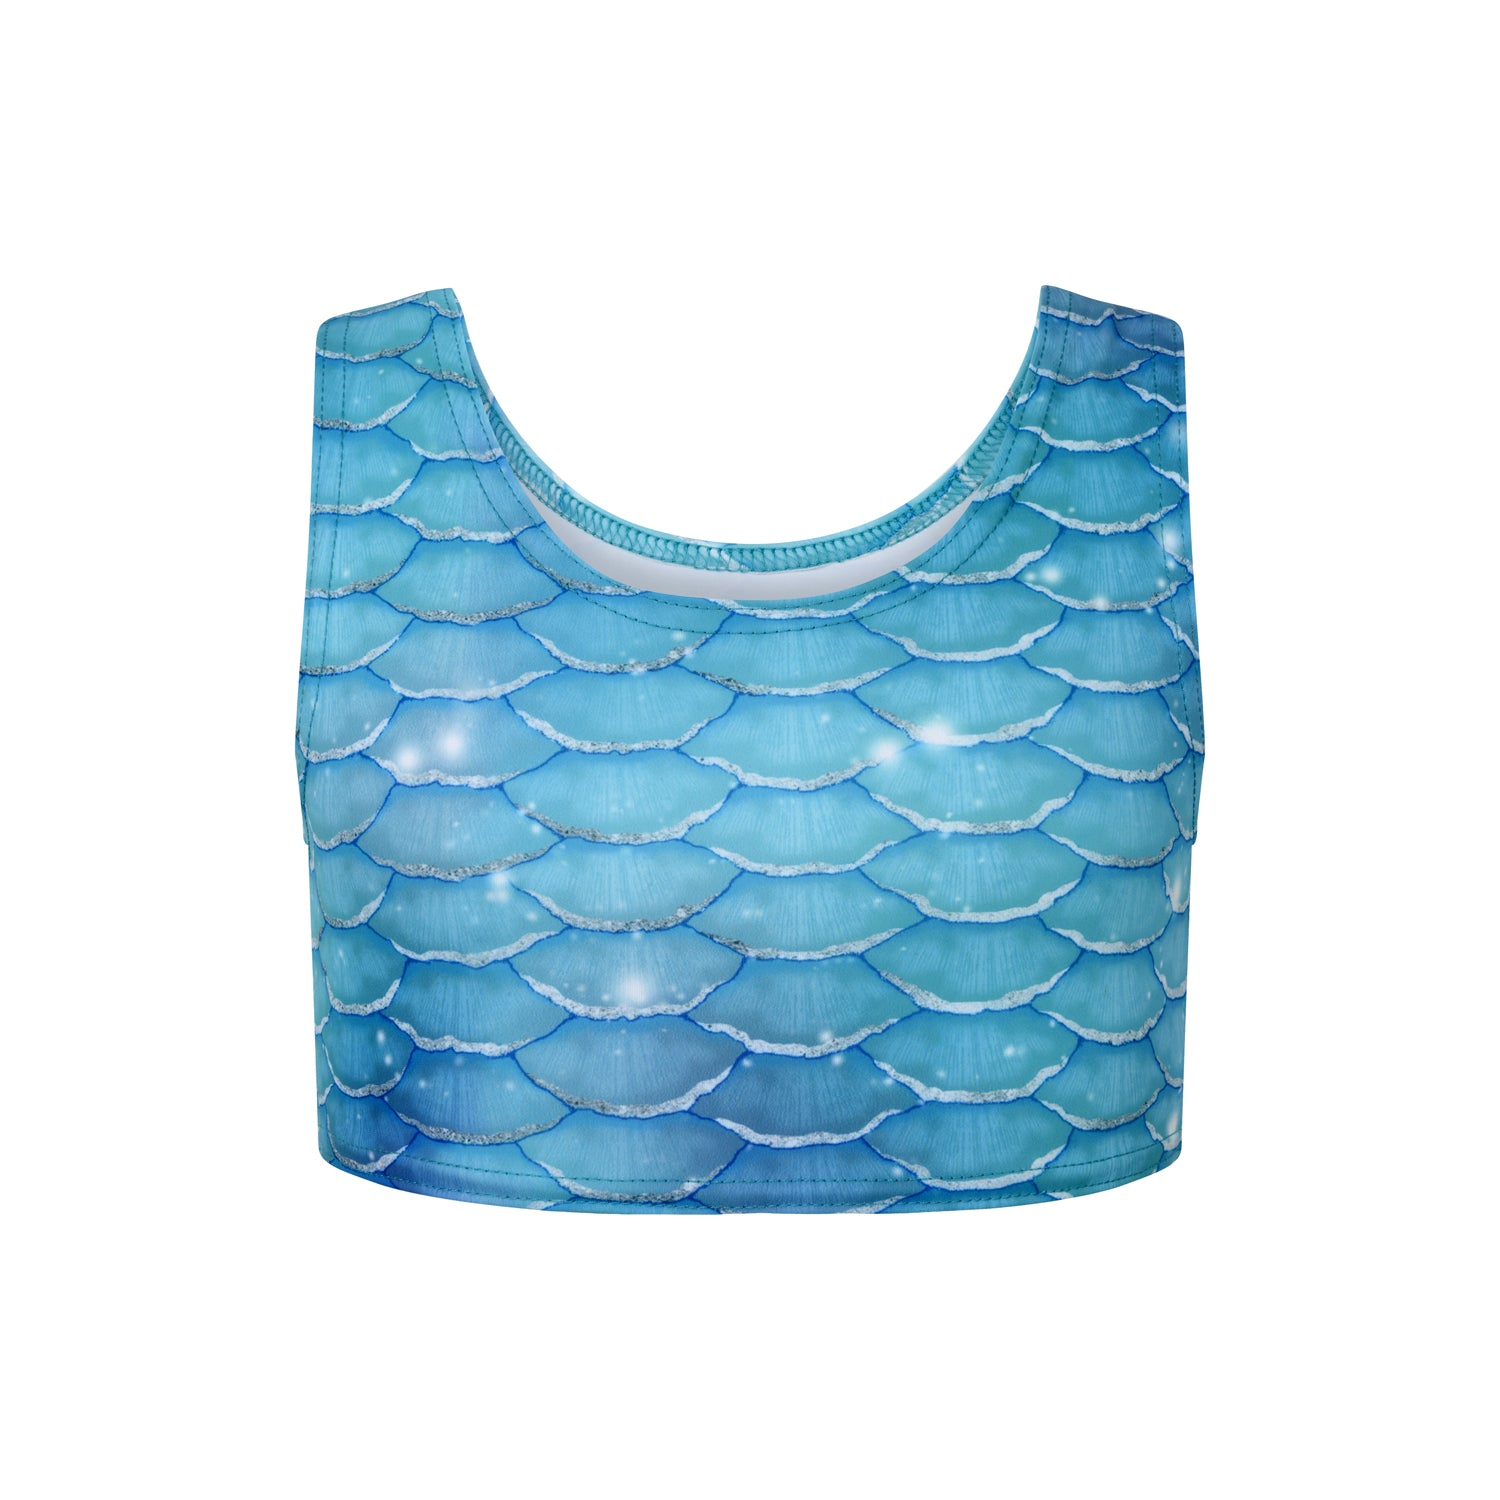 Crop top argenté surfeur